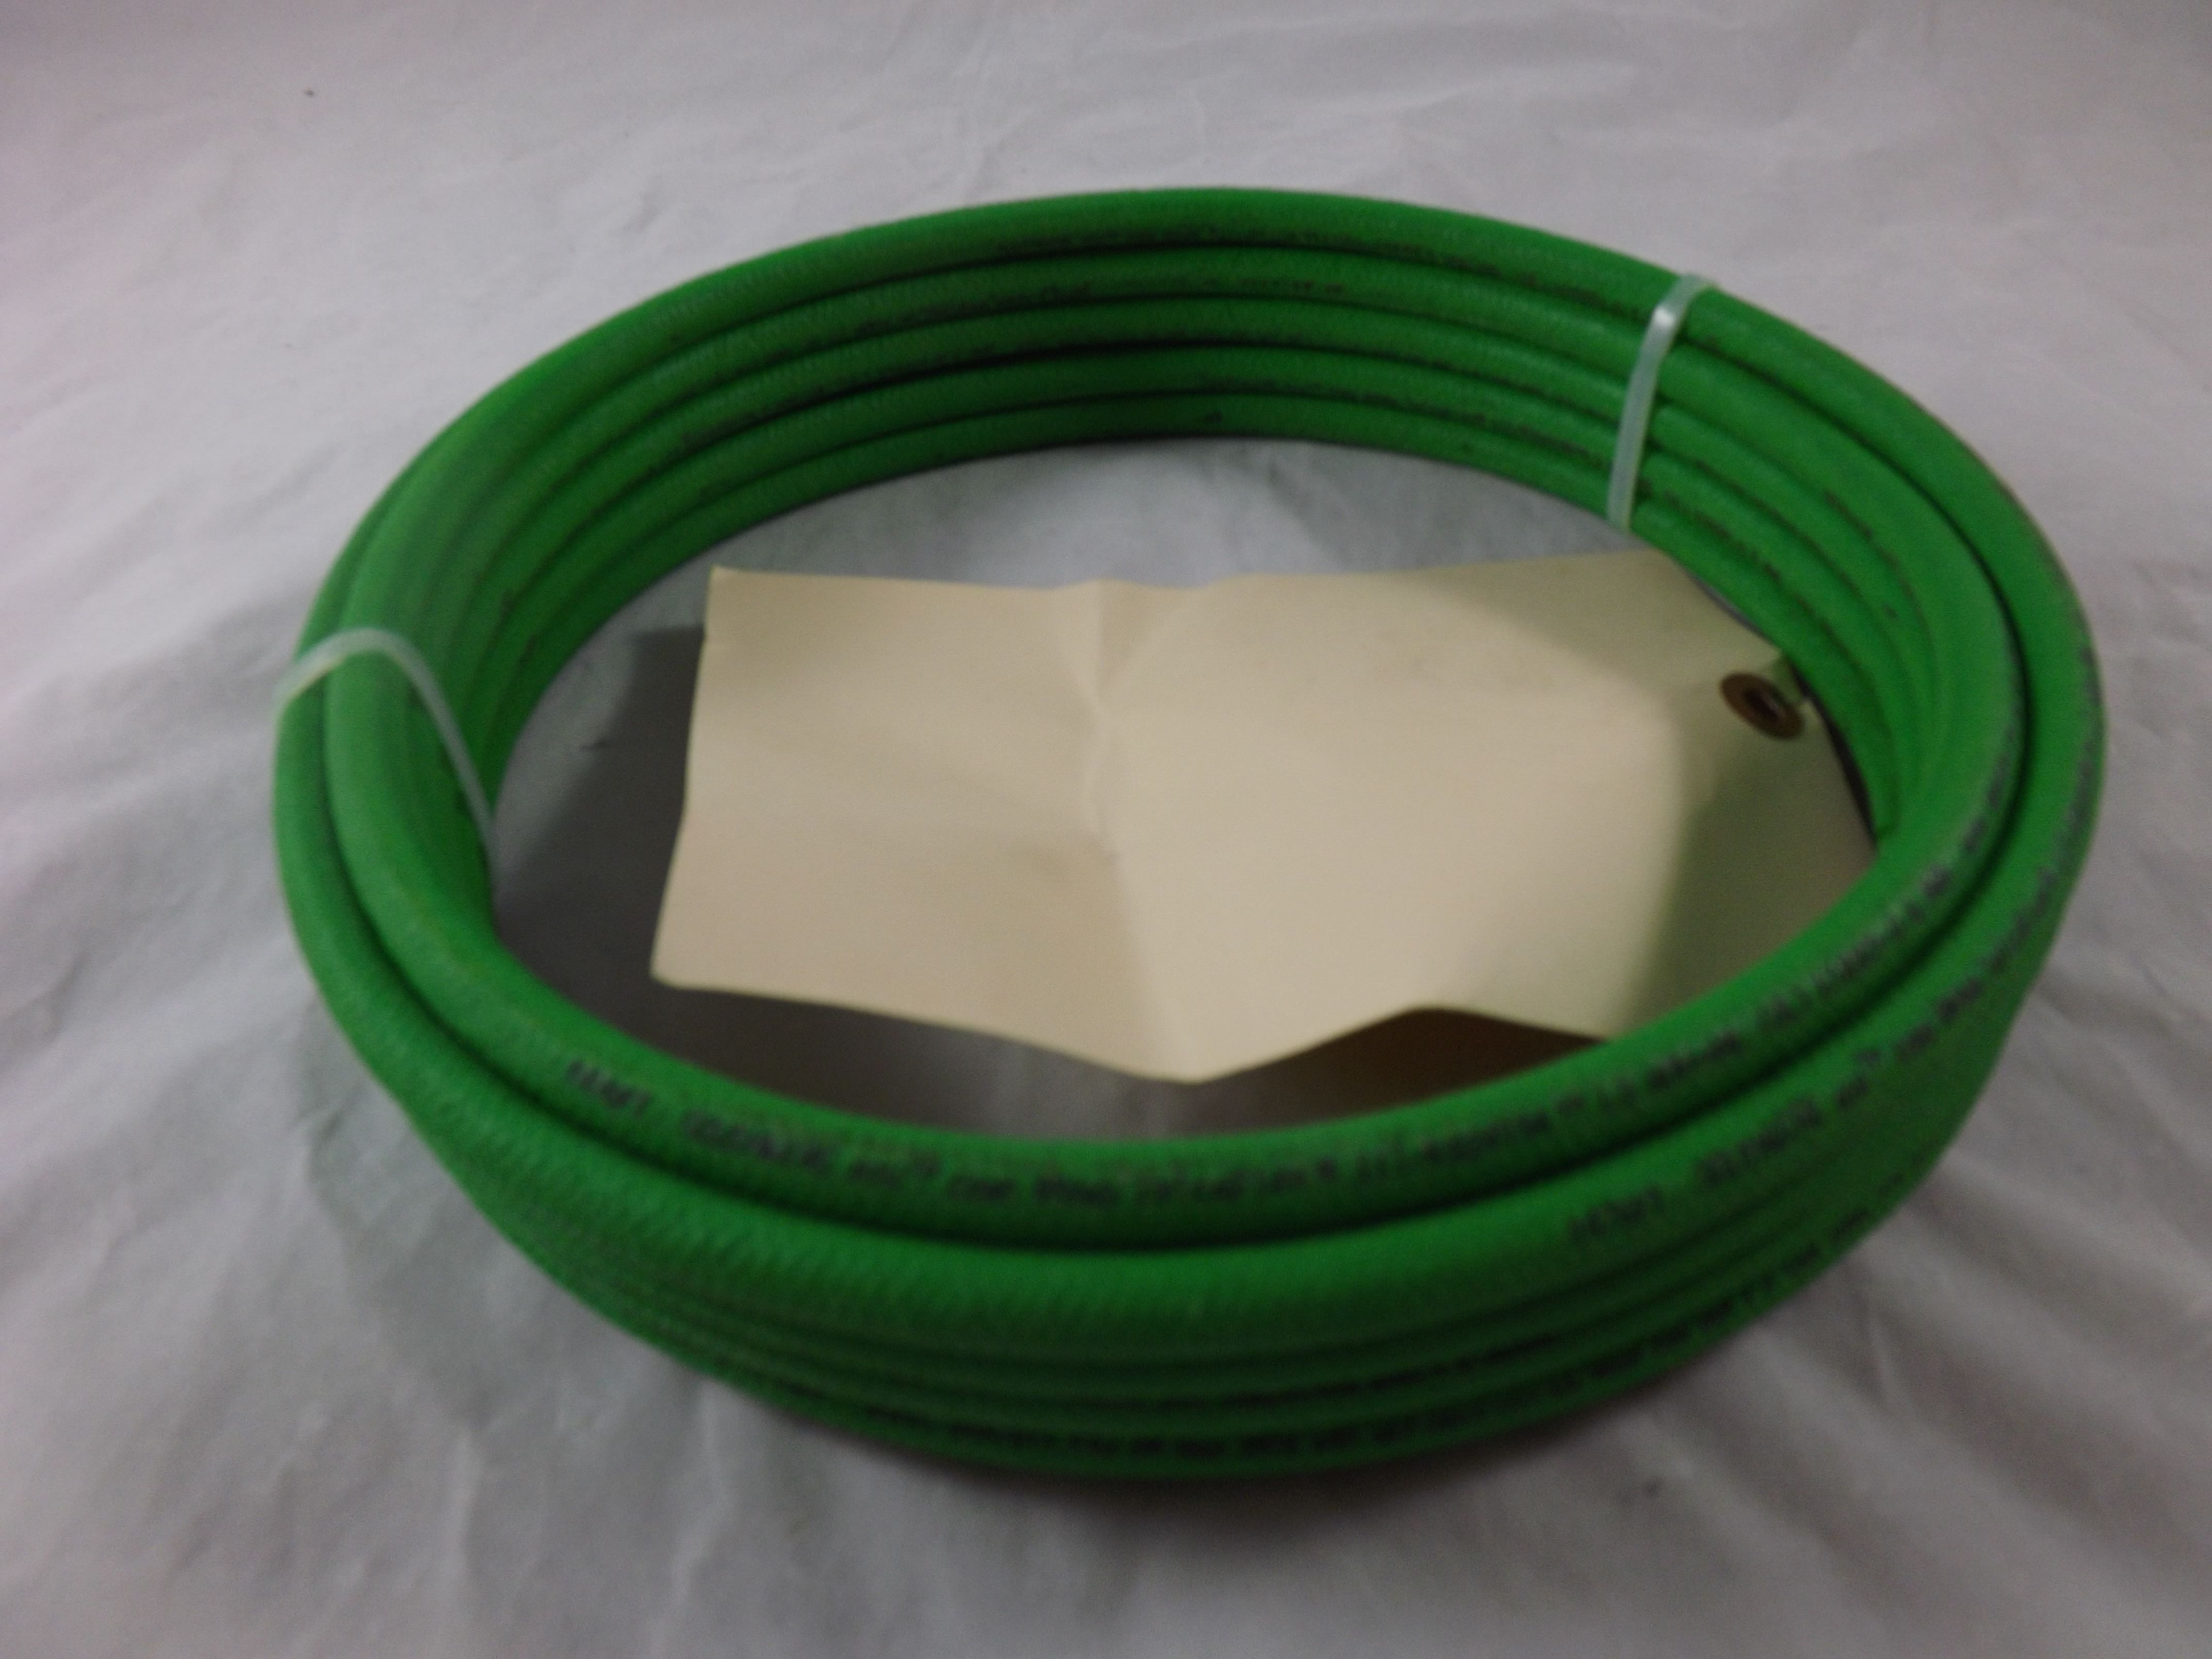 39826 - AMERICAN INSULATED WIRE CORP - 2 AWG TELCOFLEX KS24194 L3 ...